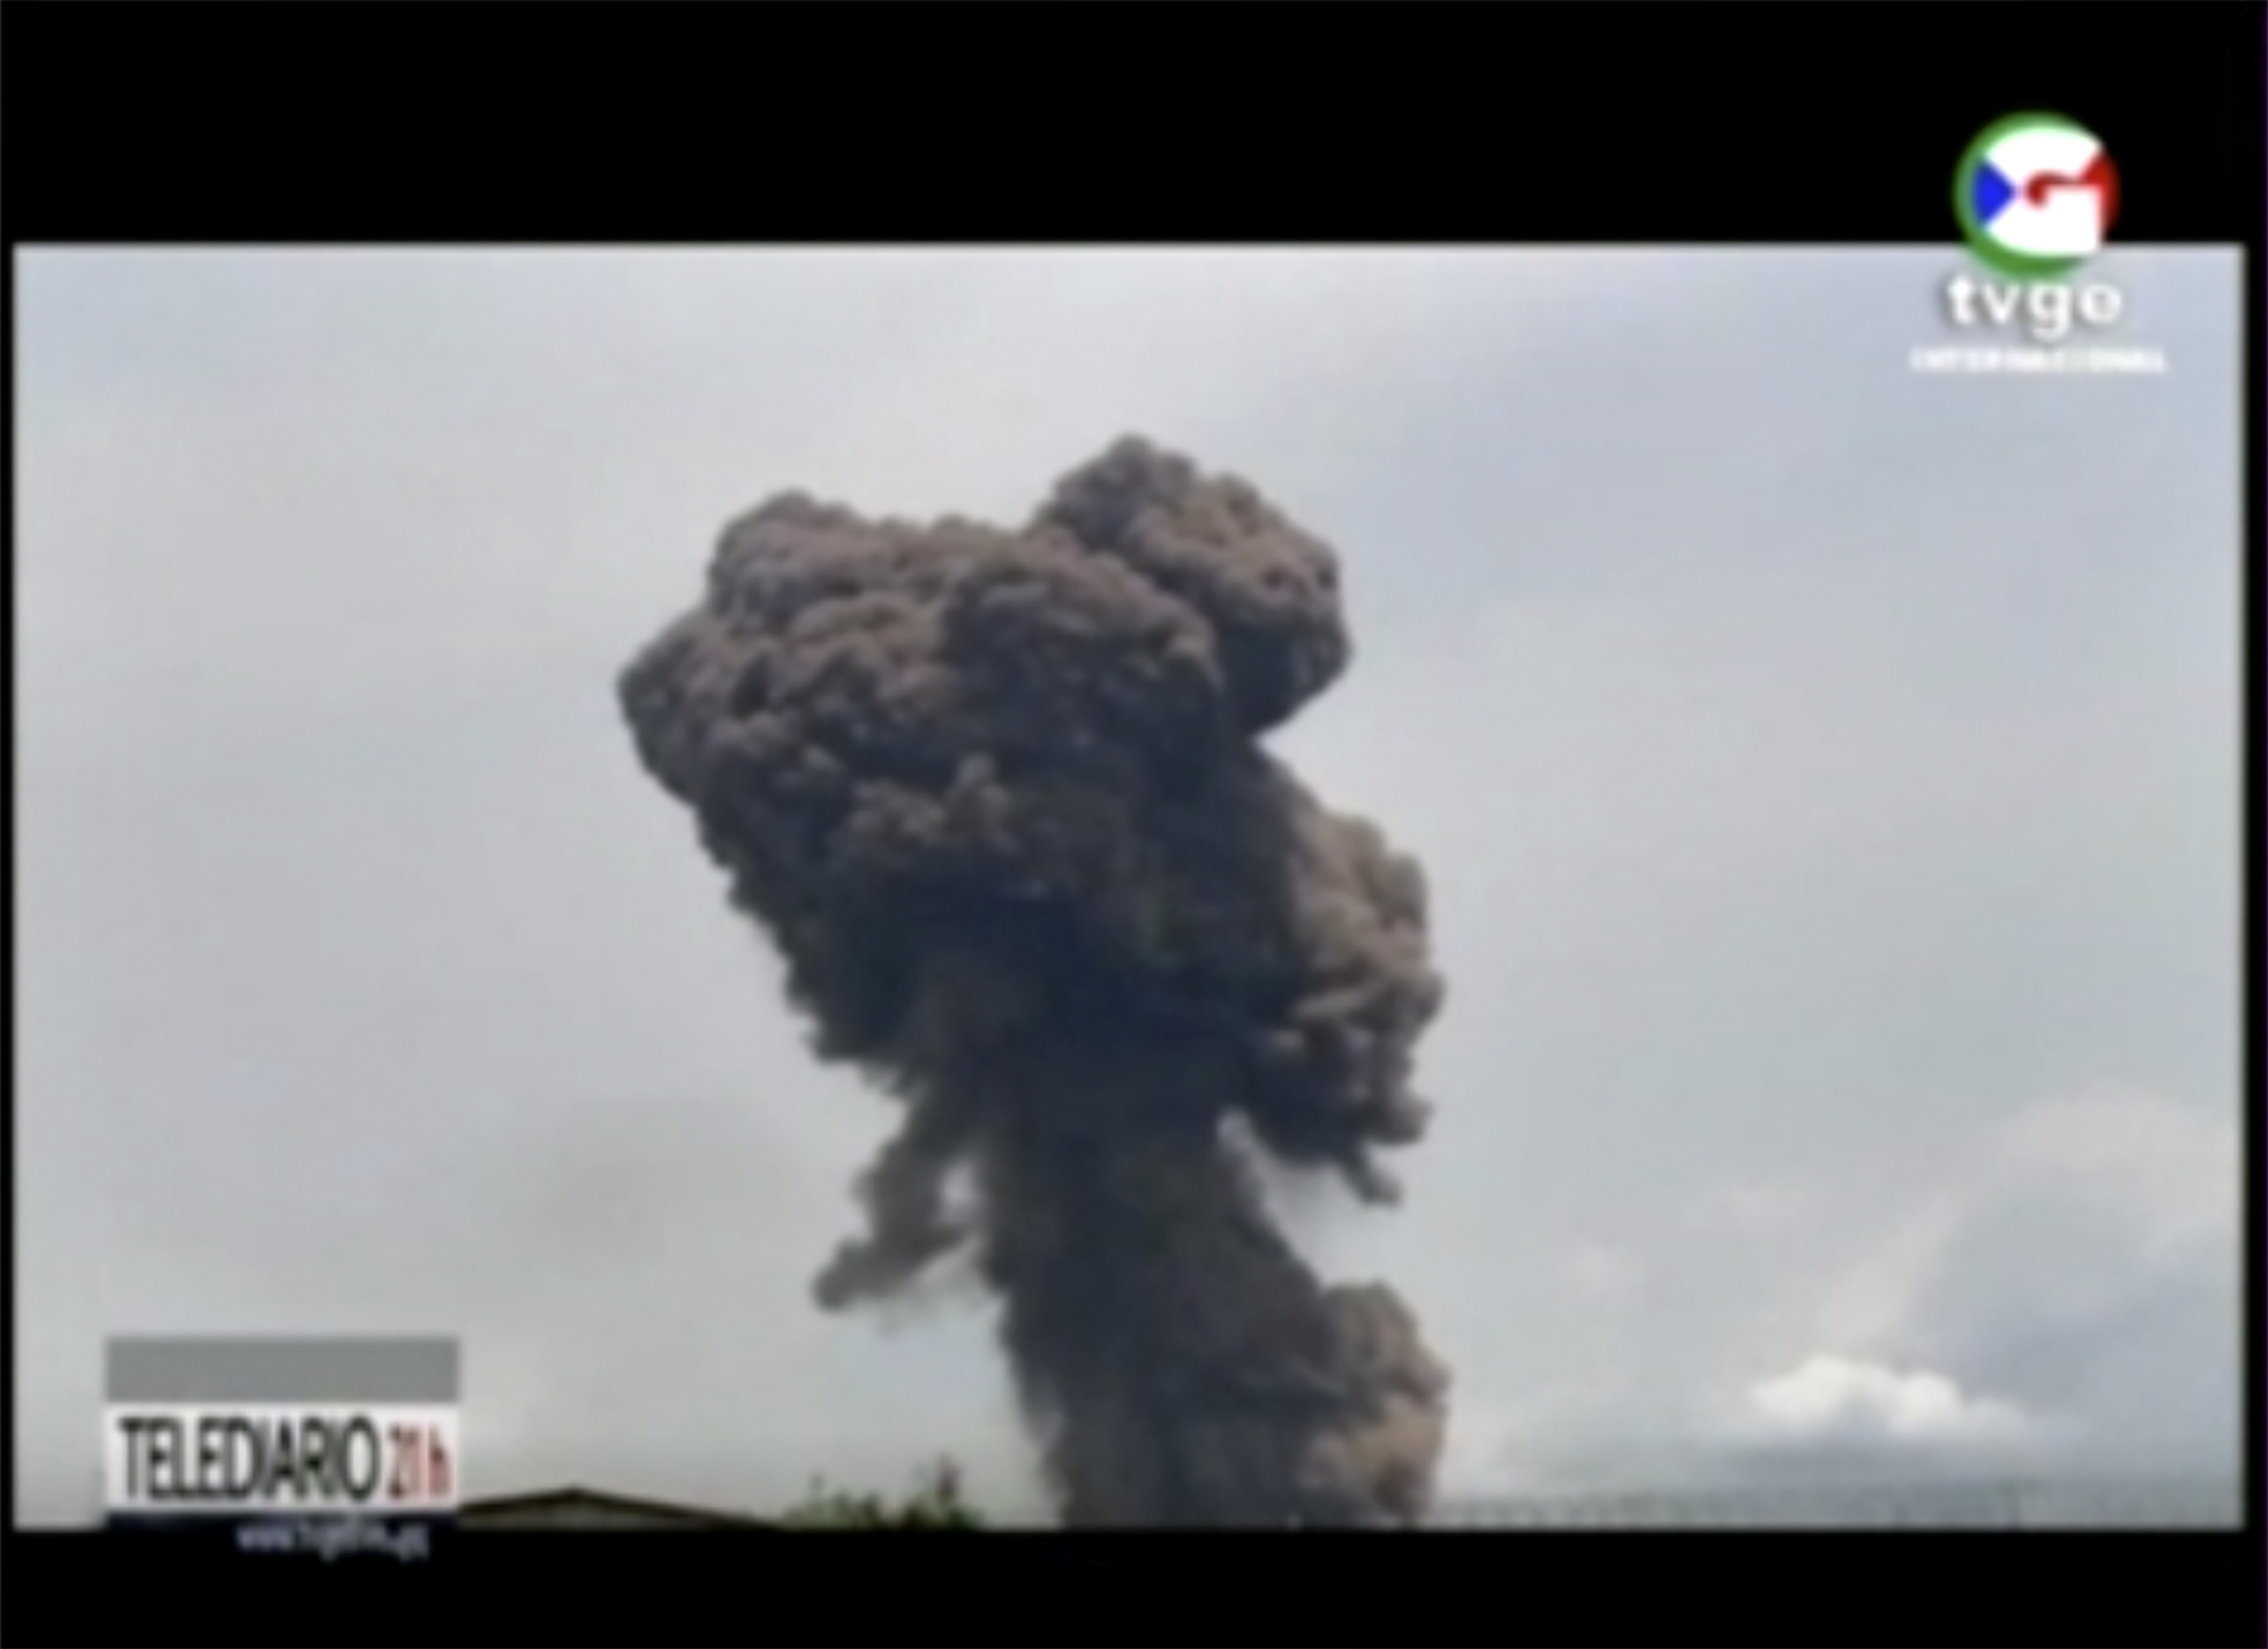 This TVGE image made from video shows smoke rising over the blast site at a military barracks in Bata, Equatorial Guinea, Sunday, March 7, 2021. A series of explosions killed at least 20 people and wounded more than 600 others on Sunday, authorities said.